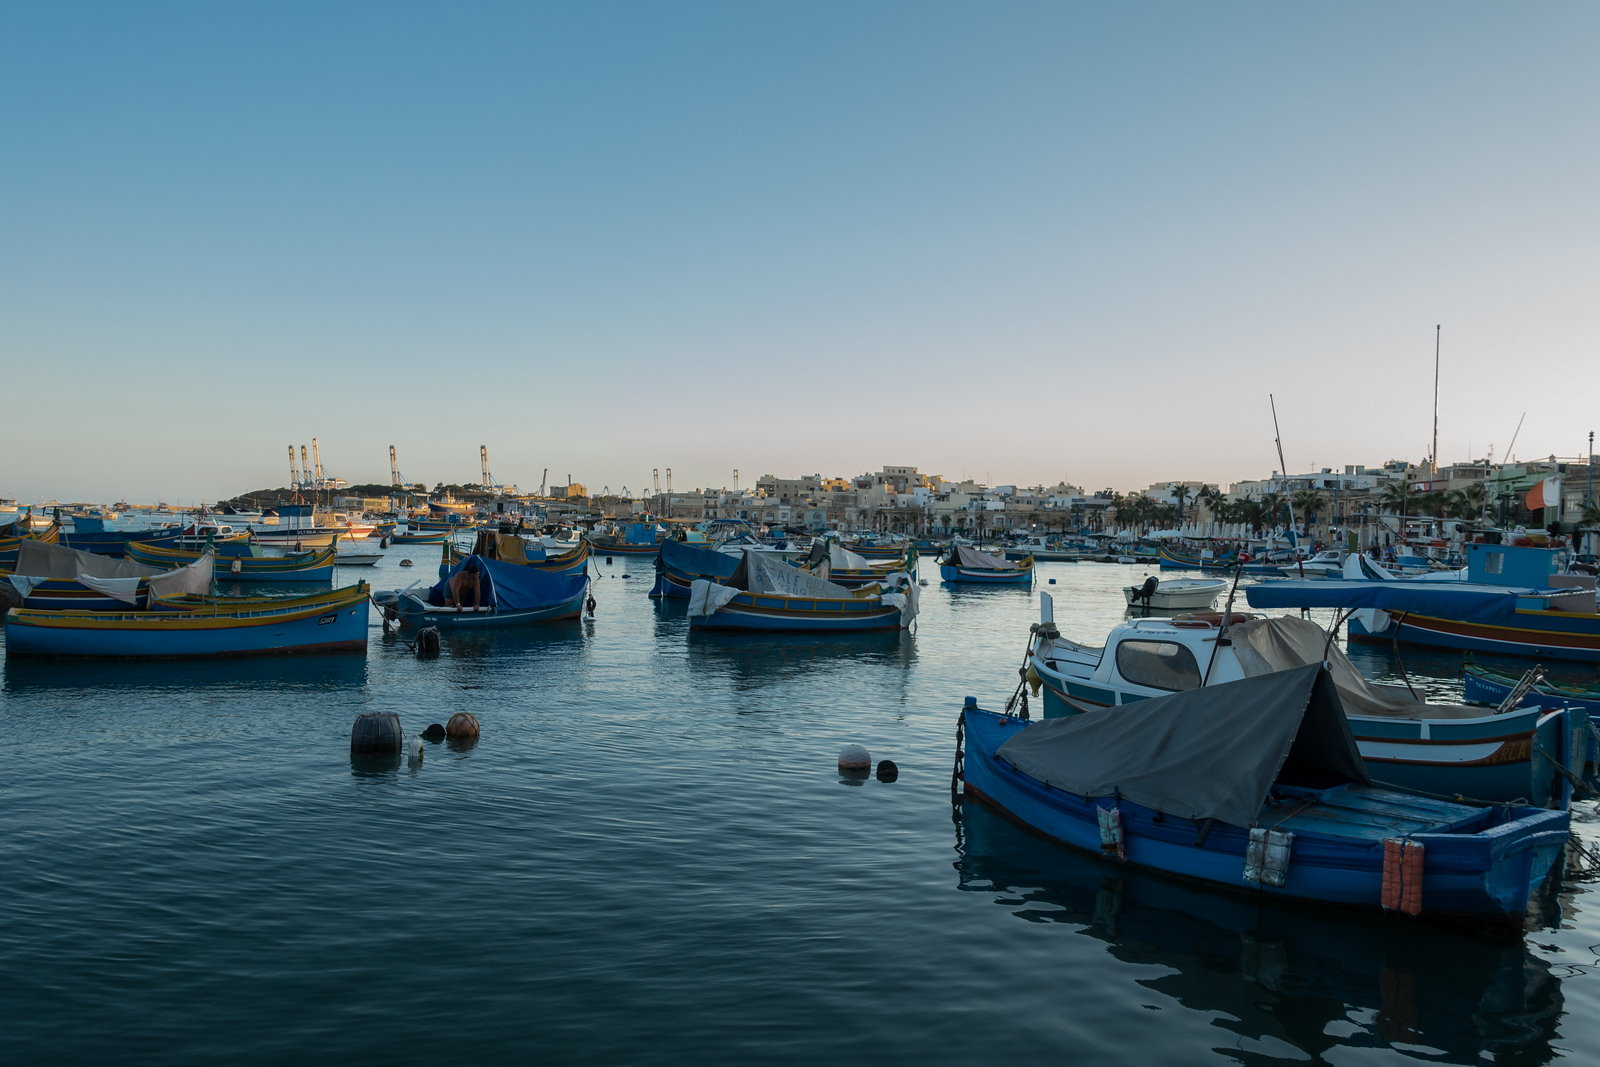 Marsaxlokk - The Famous Fishing Village in Malta